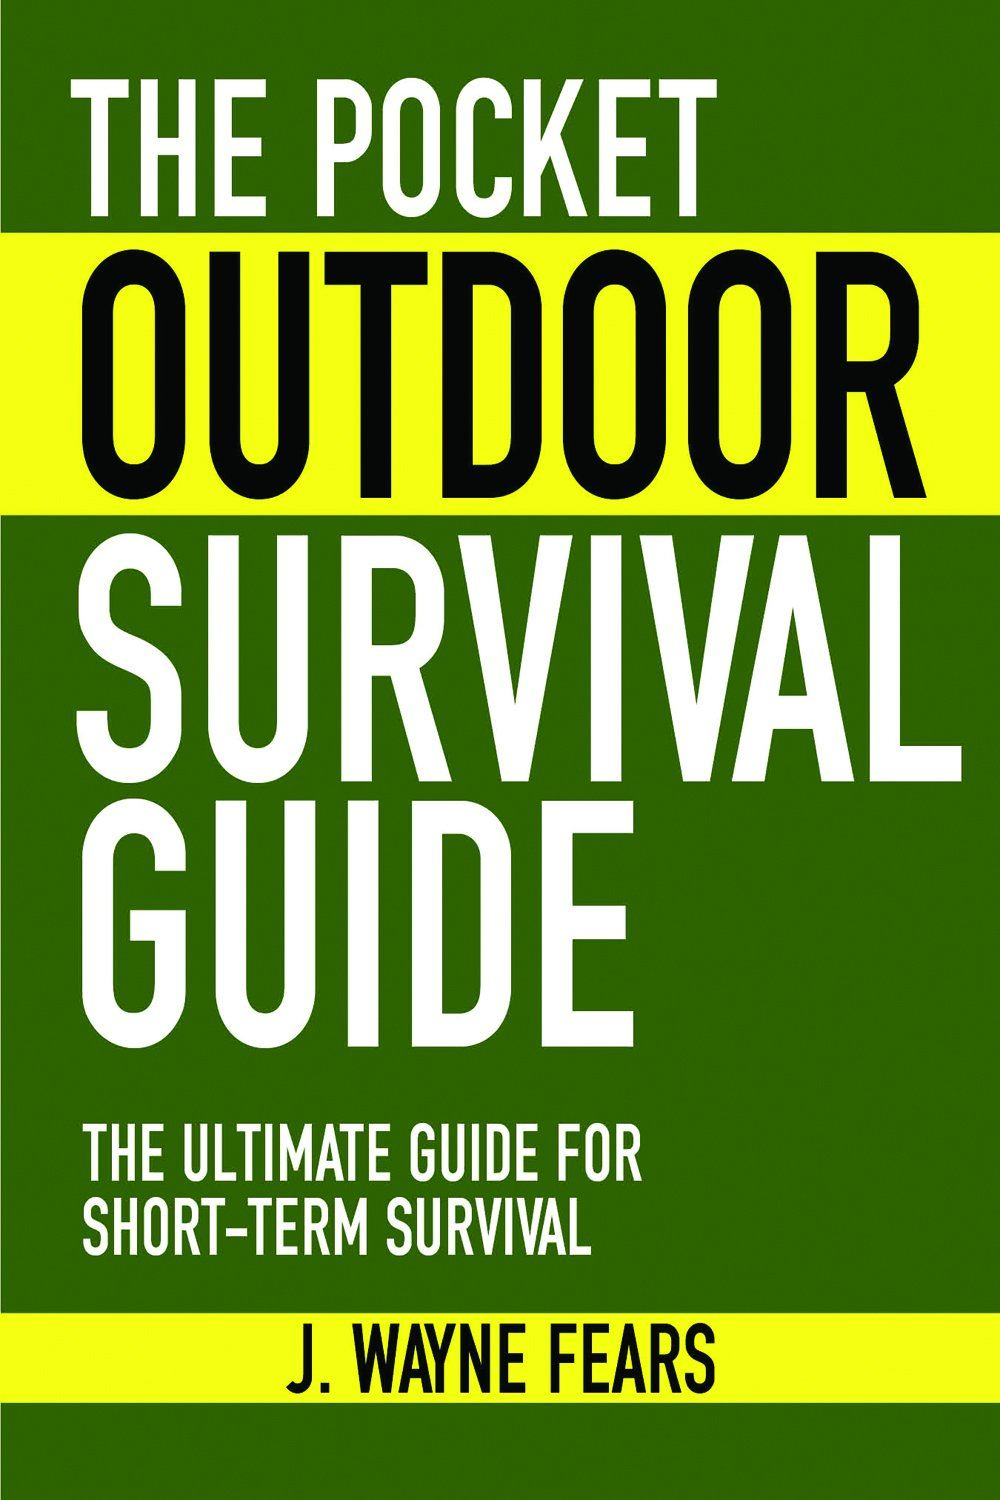 The Pocket Outdoor Survival Guide: The Ultimate Guide for Short-Term Survival By: J. Wayne Fears